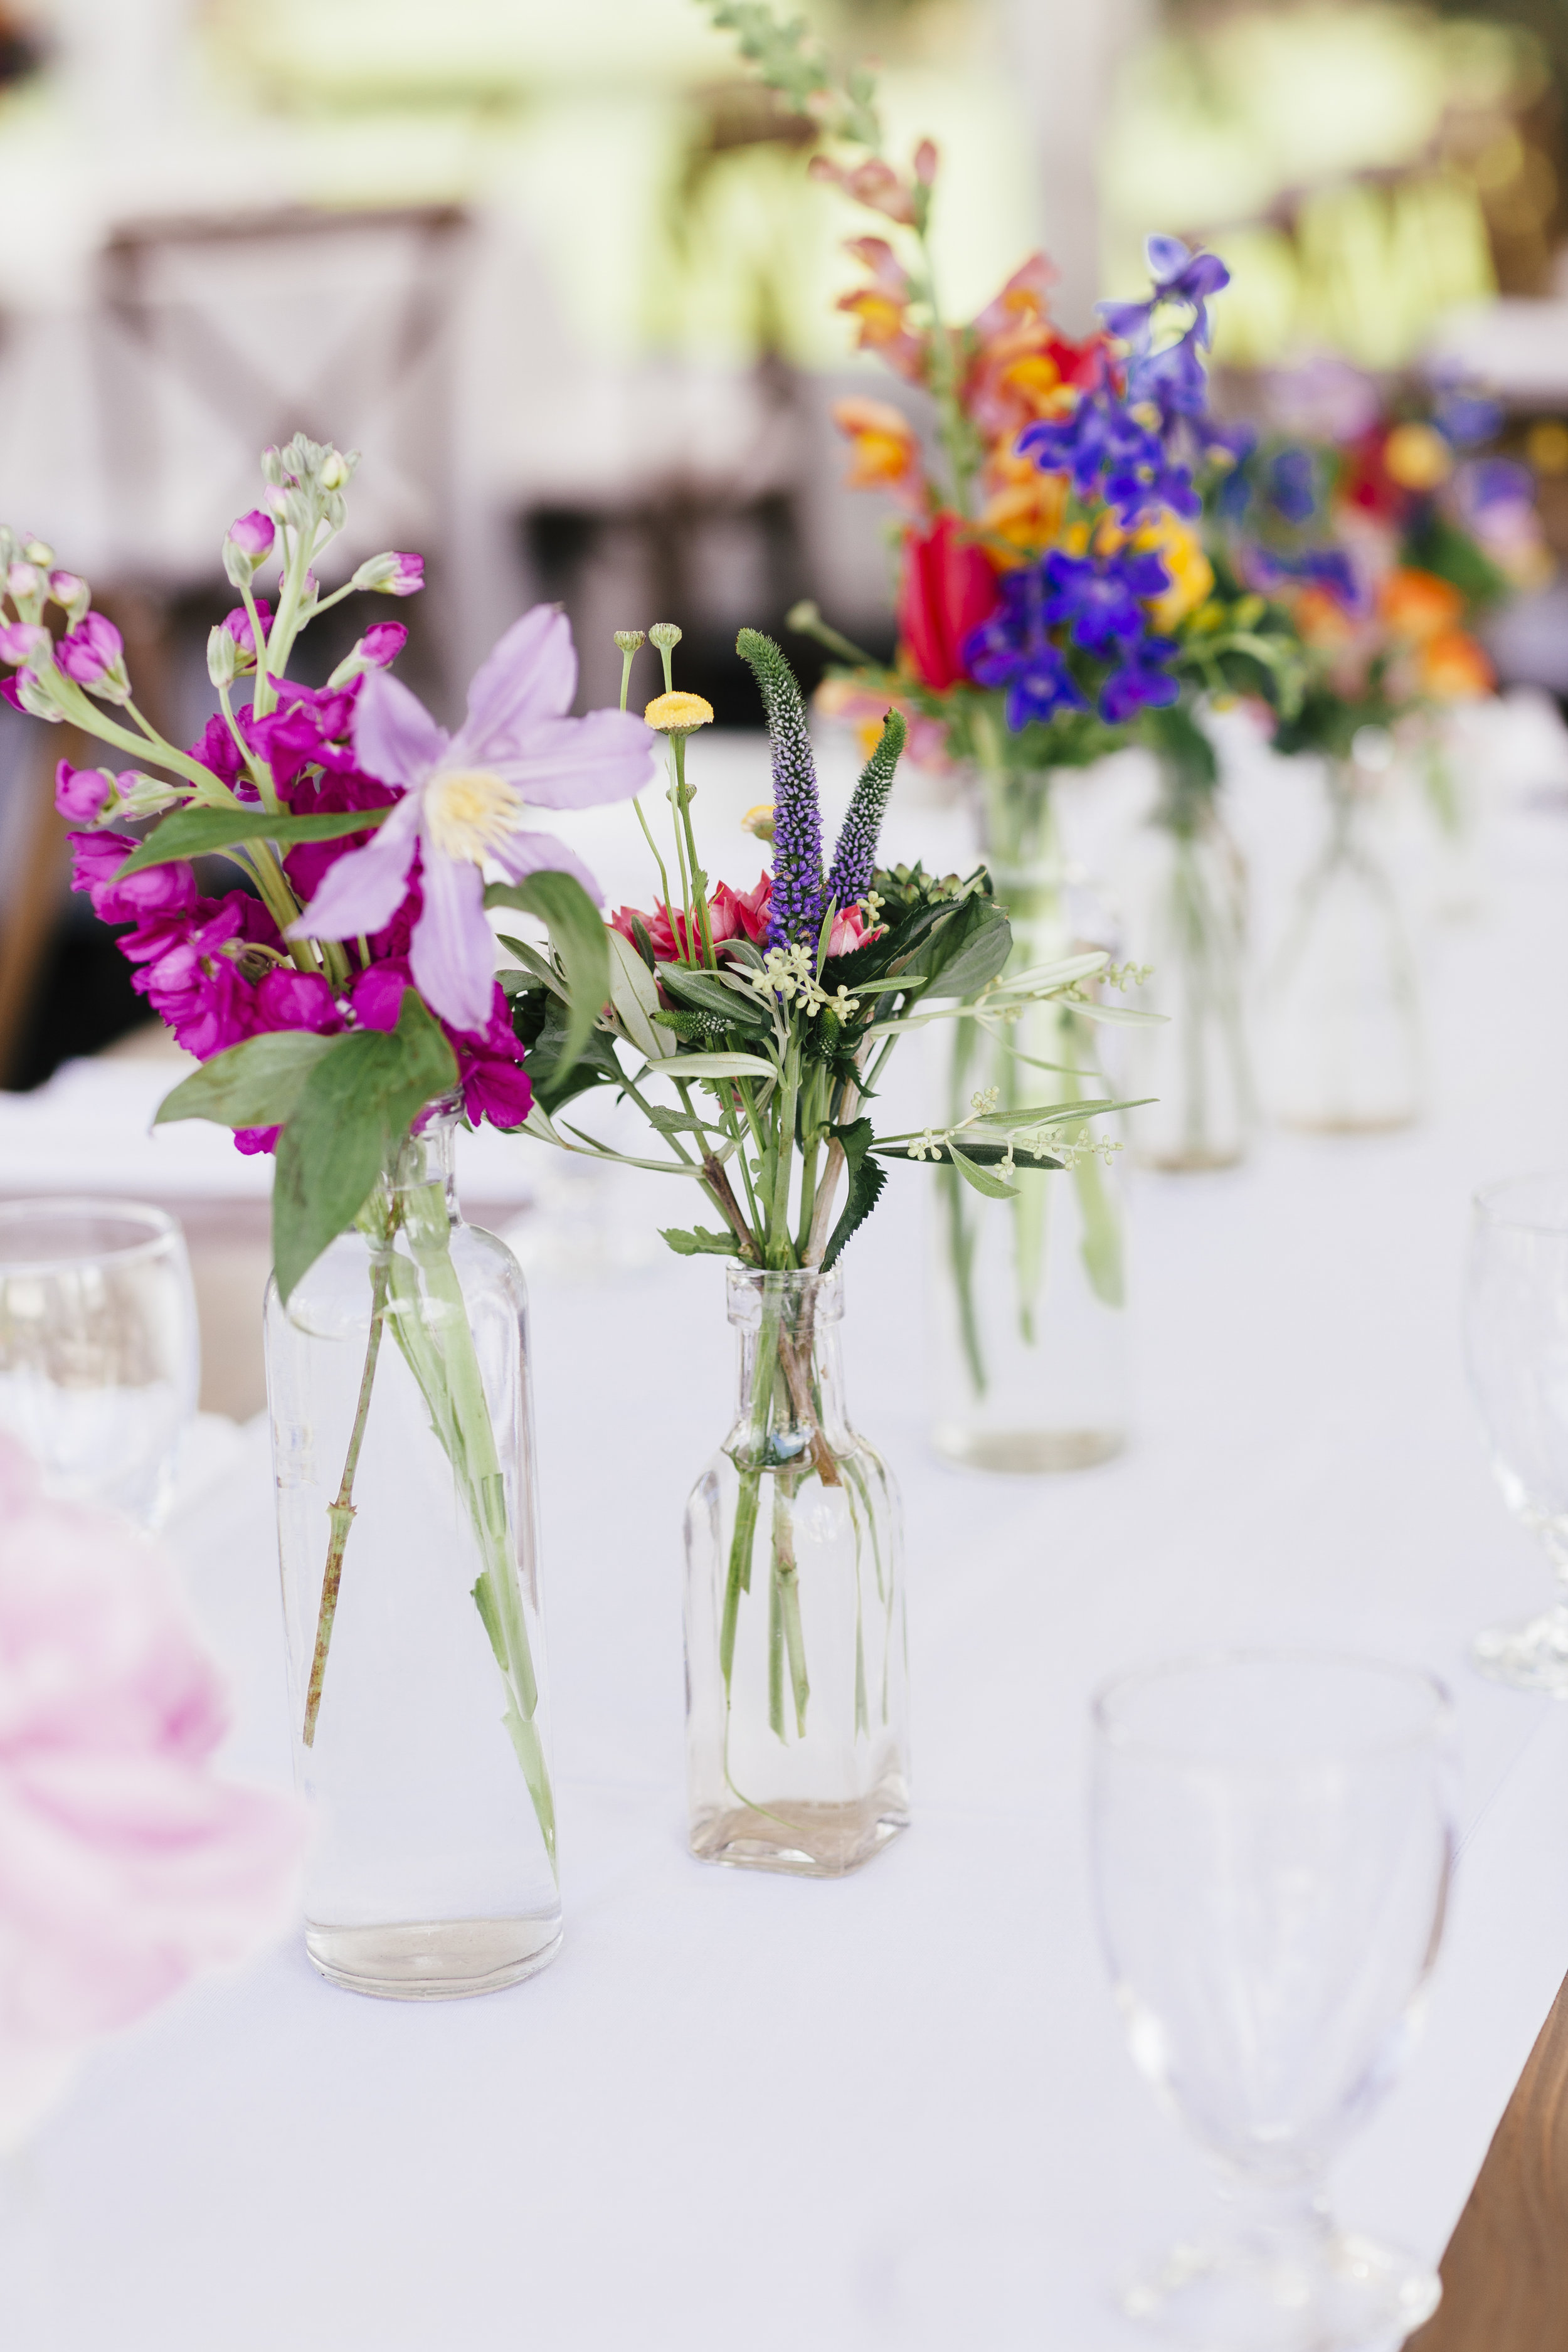 Private Residence Wedding  Colorful and Simple Floral Vases  Planning by Wrap It Up Parties